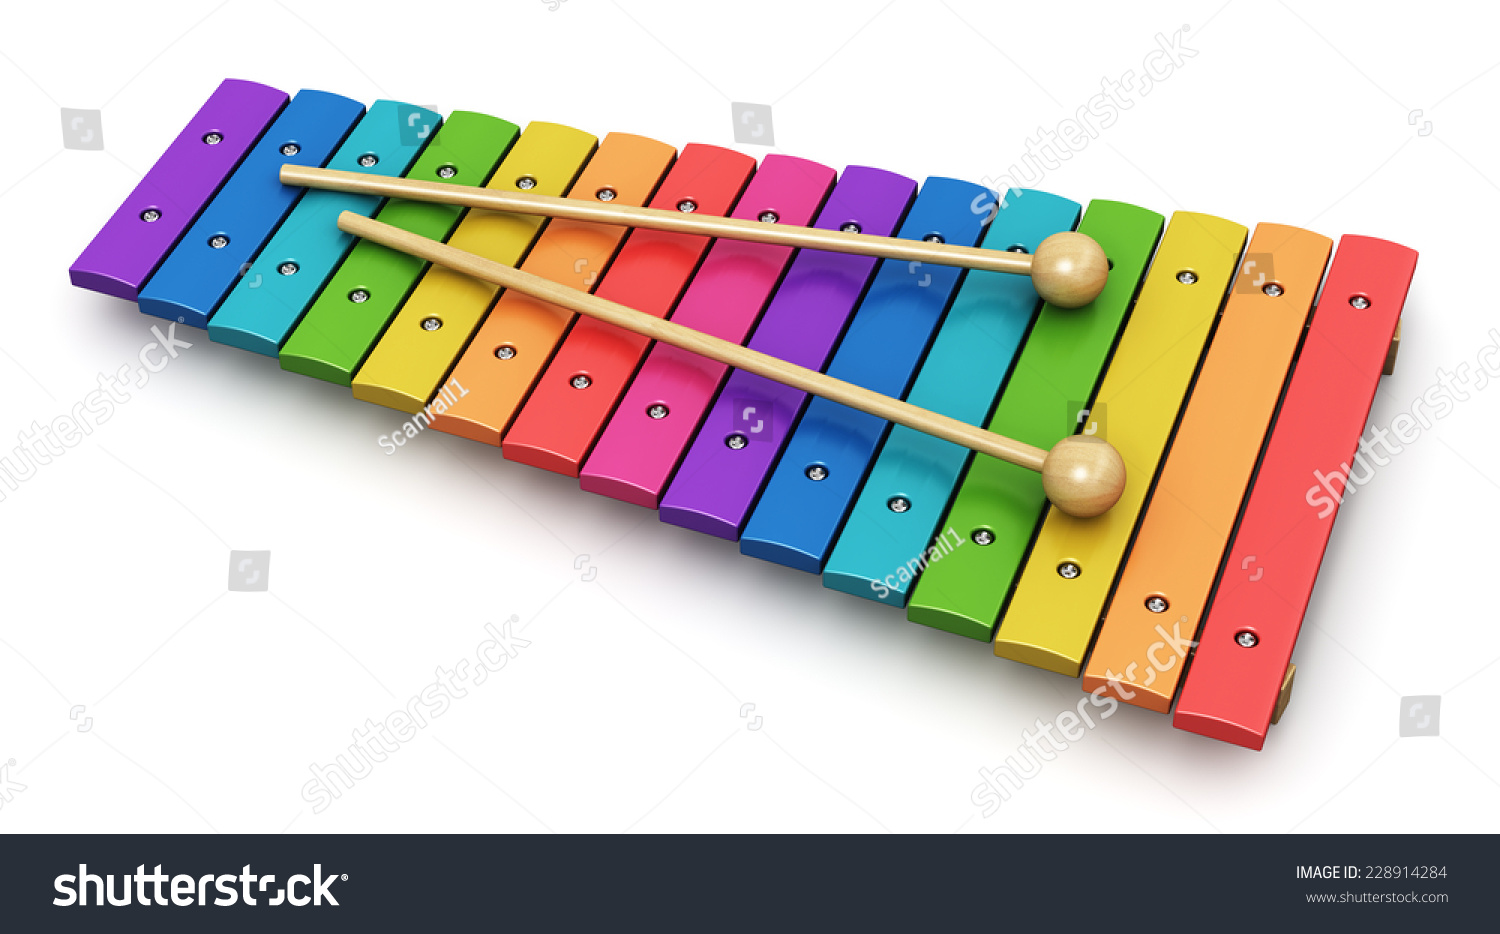 Creative abstract percussion musical instrument and music